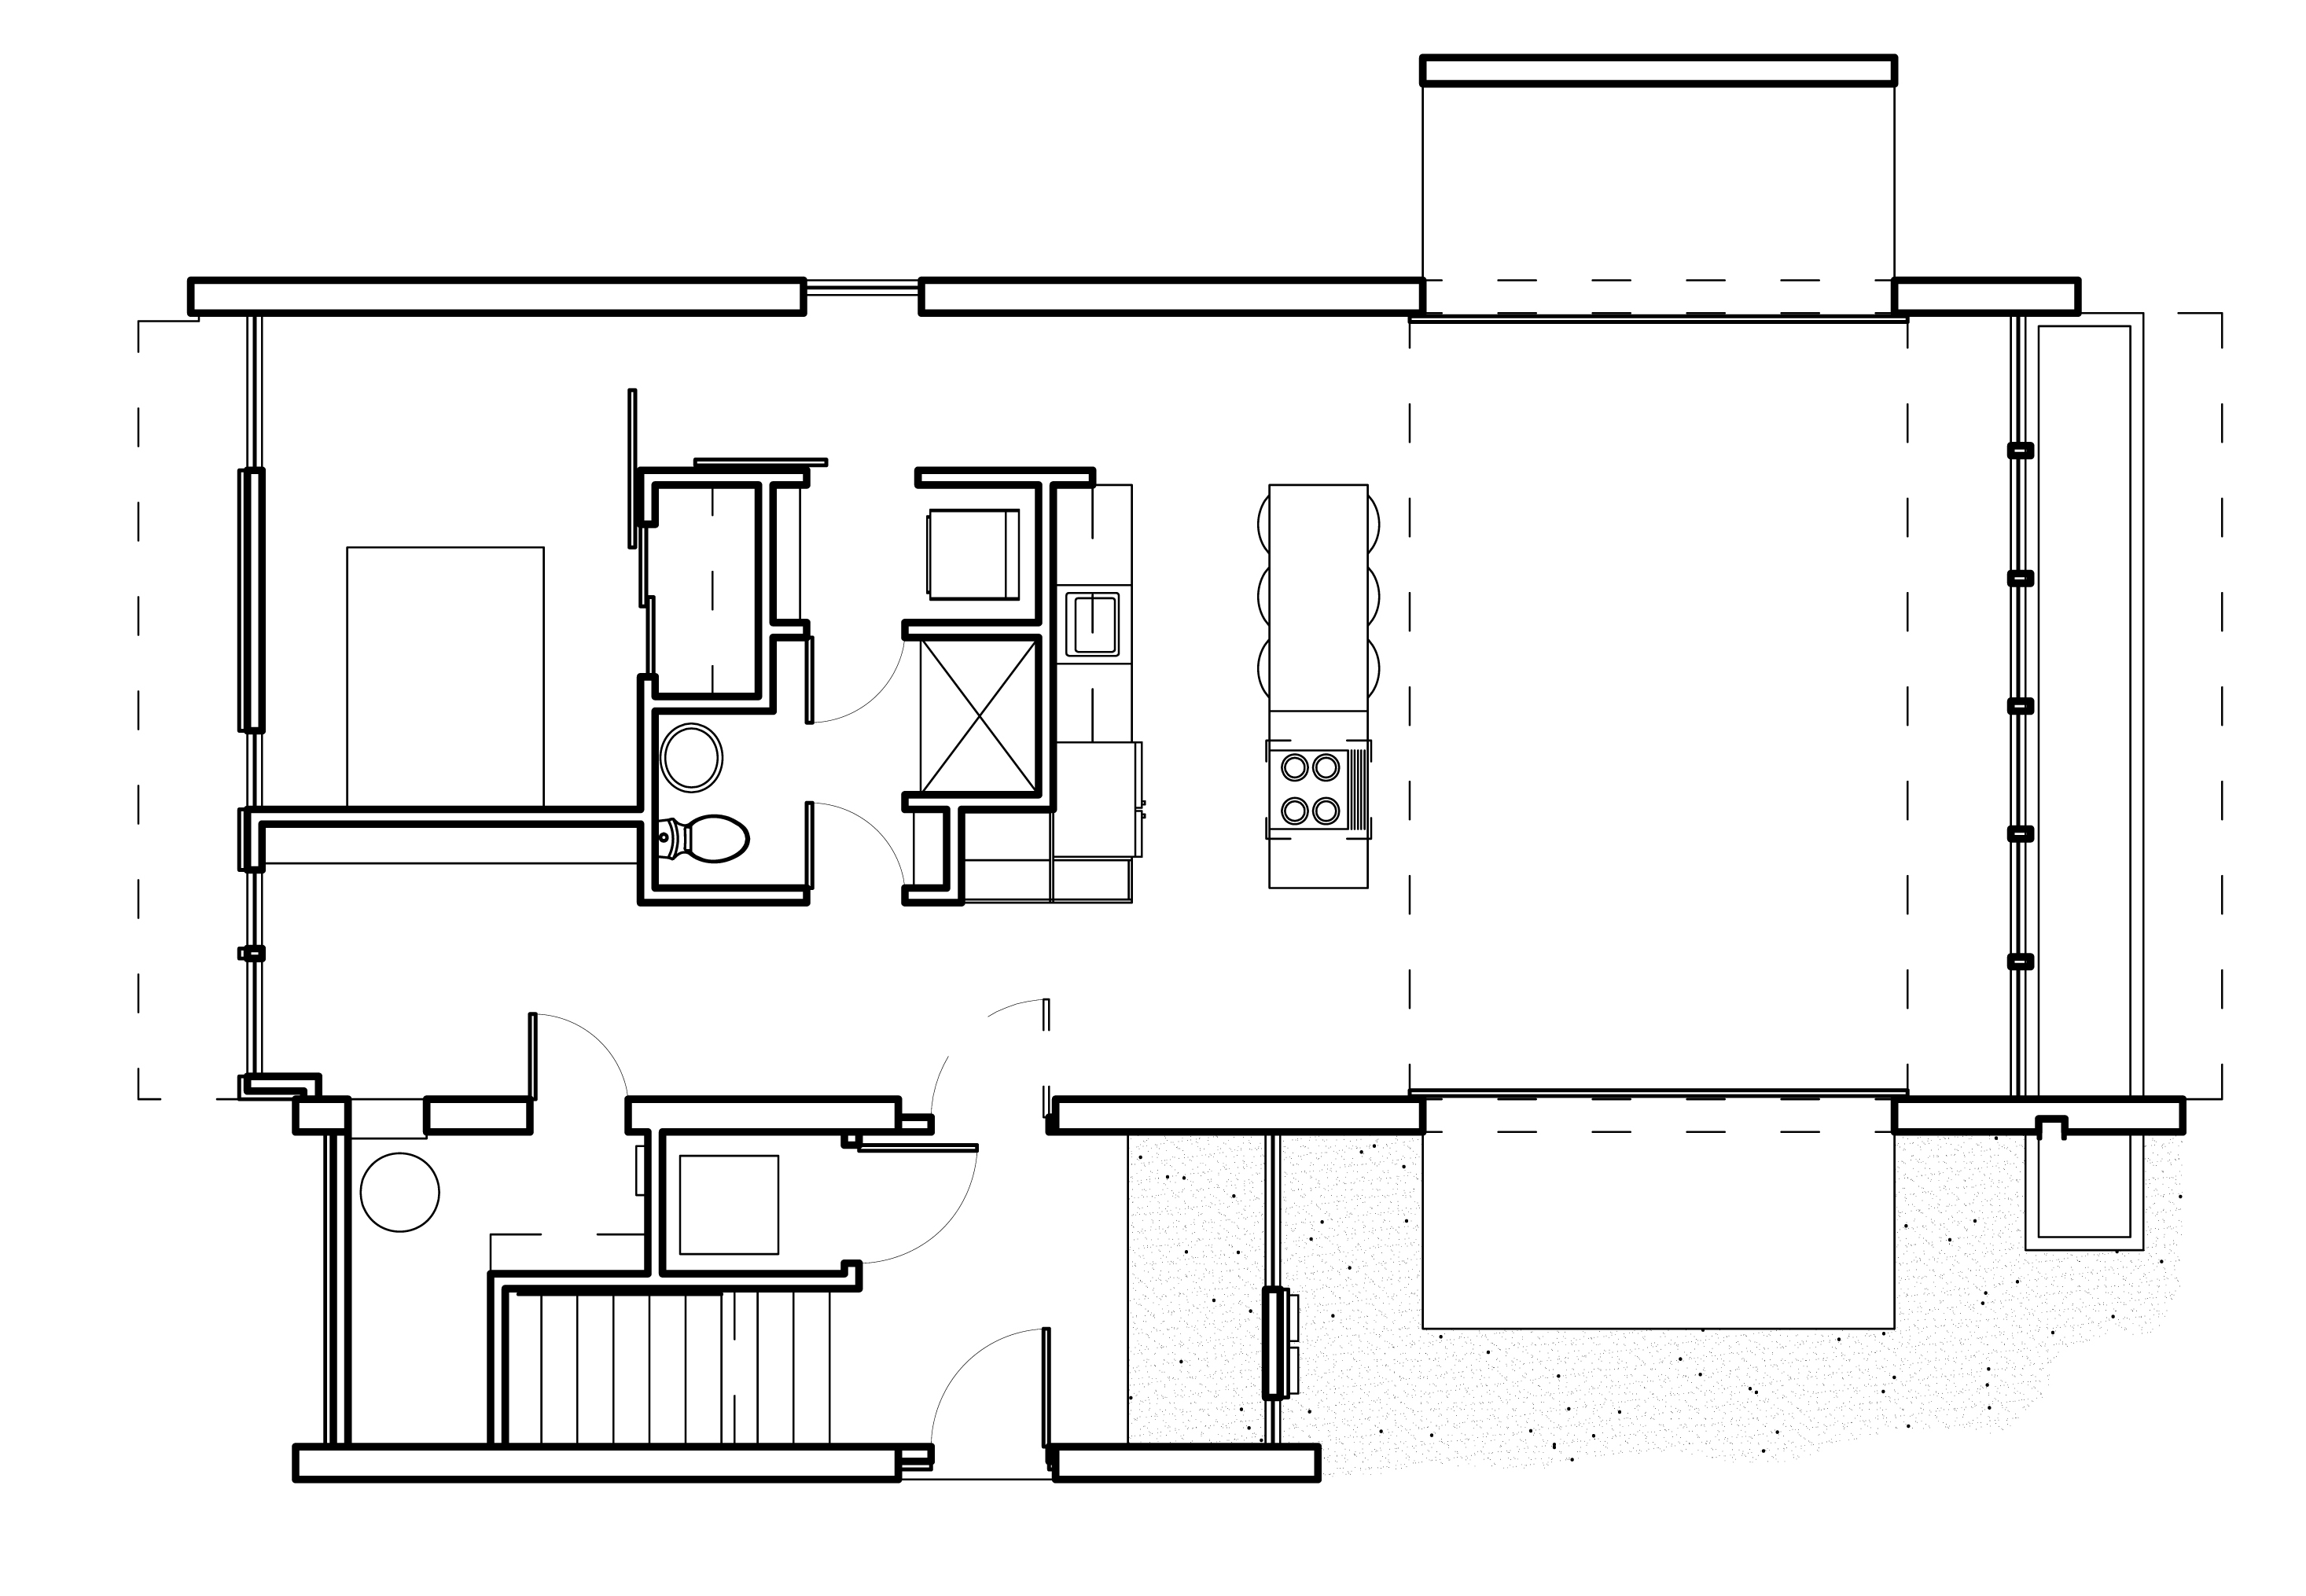 modern house plans contemporary home designs floor plan 02 - Small Modern House Plans